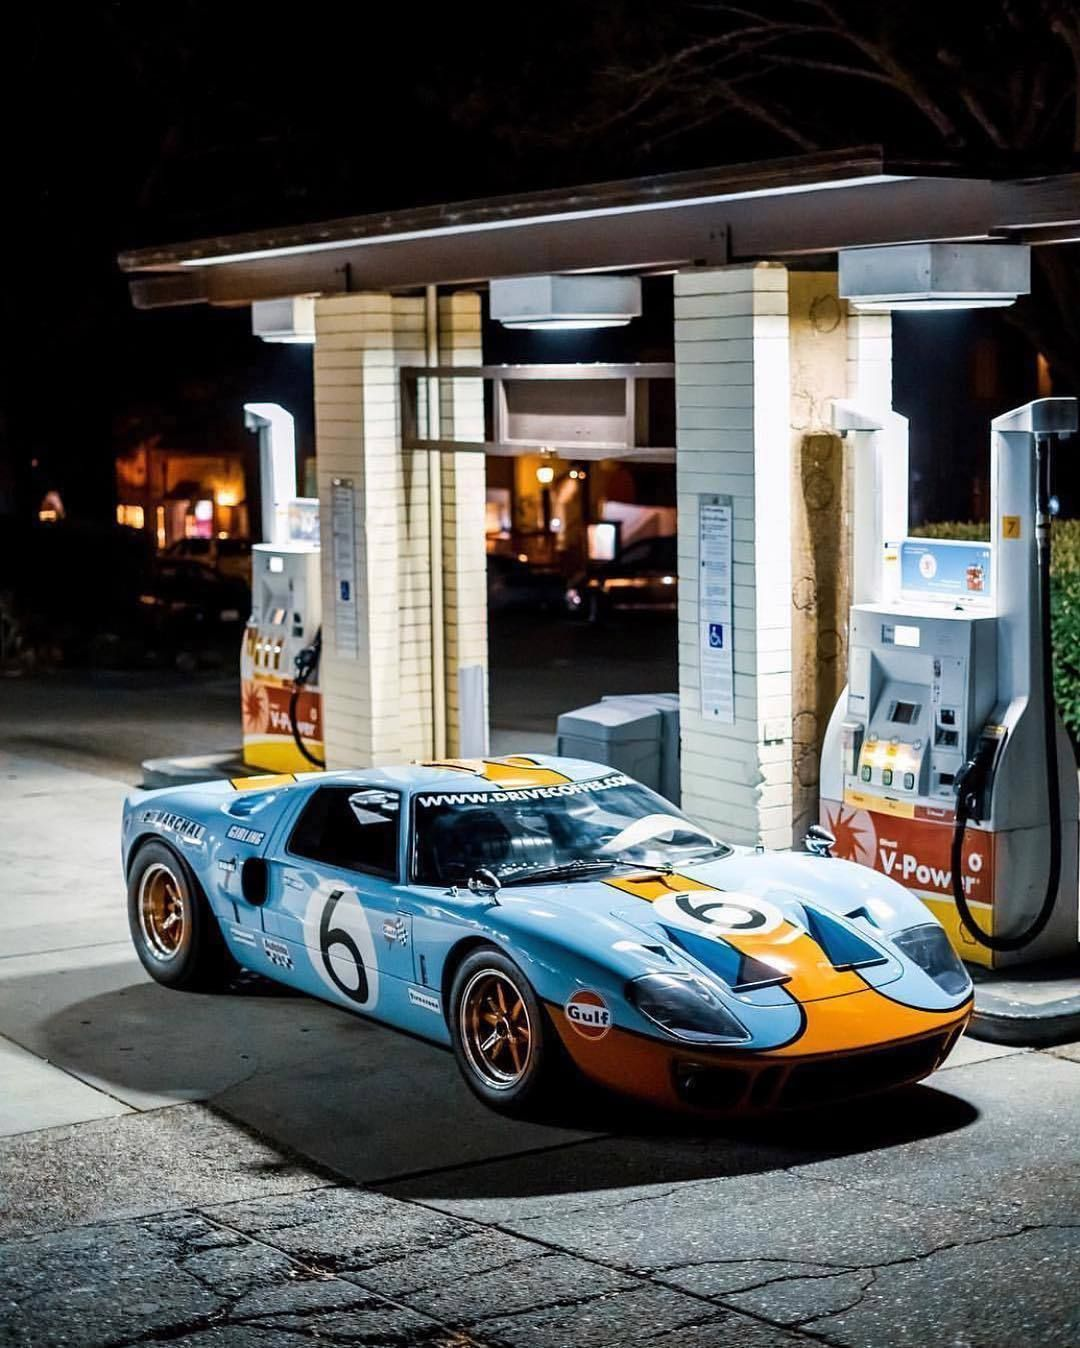 Gas Up Ford Gt40 Ford Gt40 Ford Gt Classic Cars